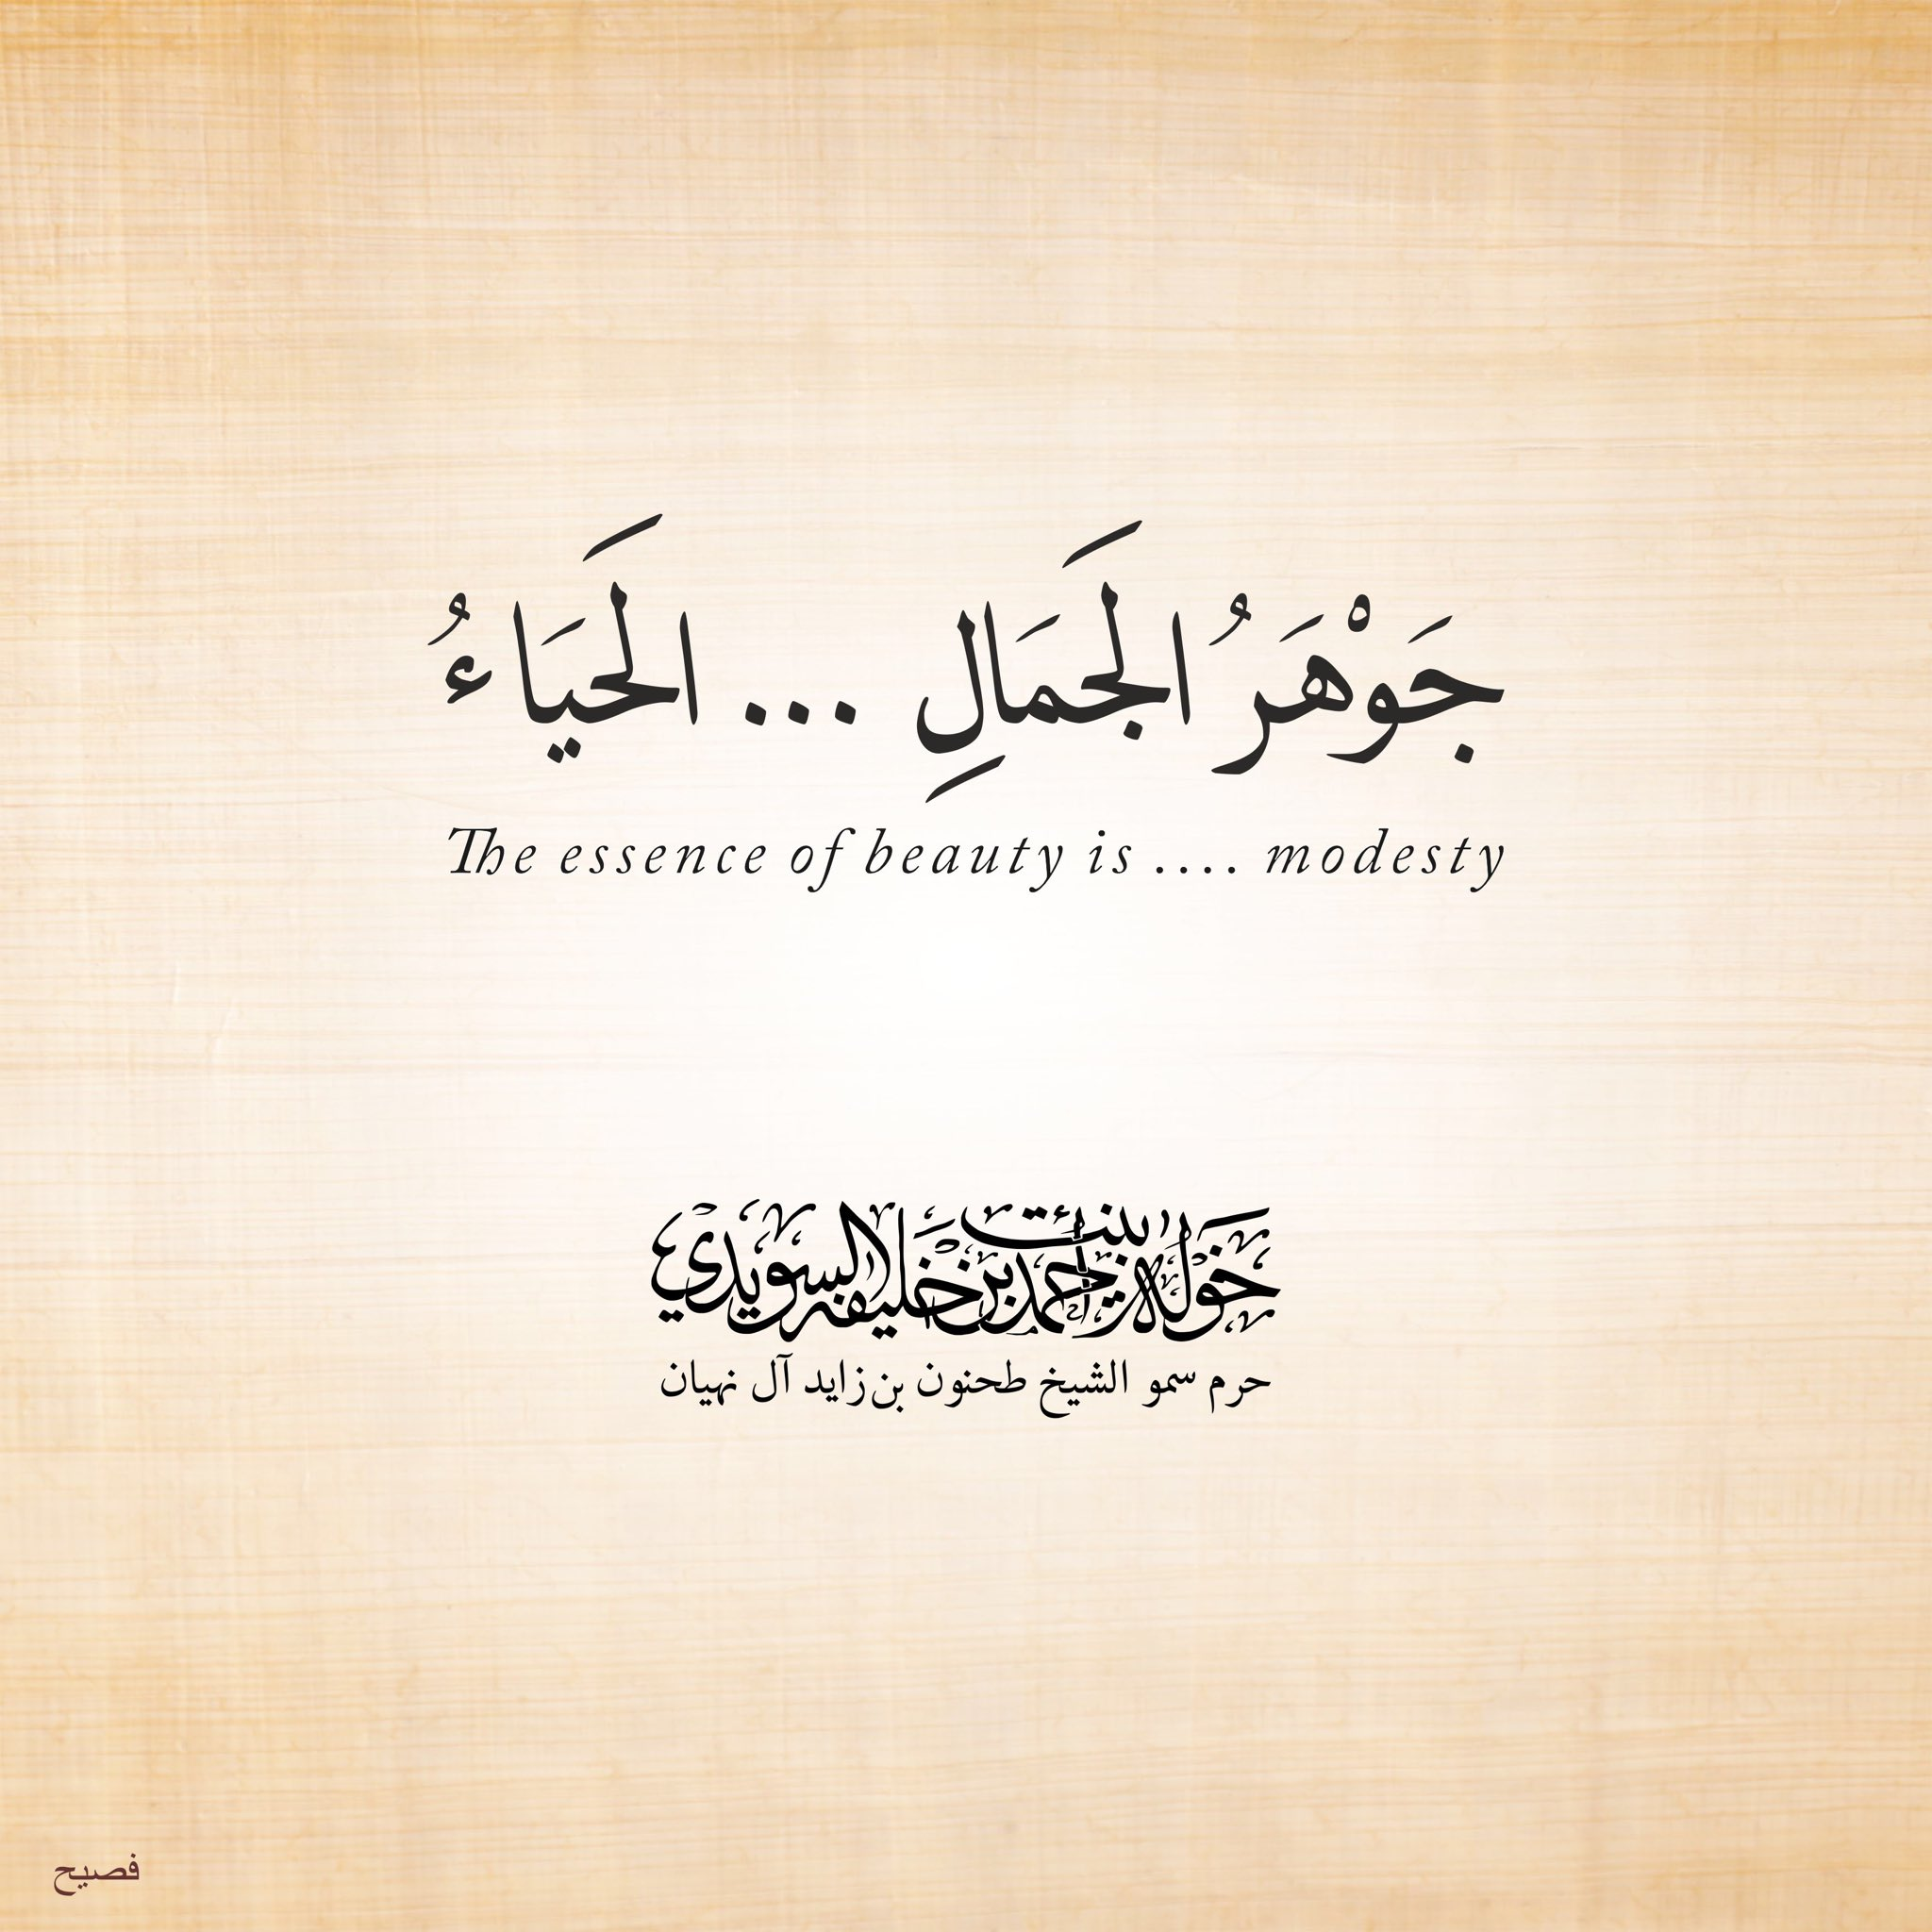 جوهر الجمال………الحياء